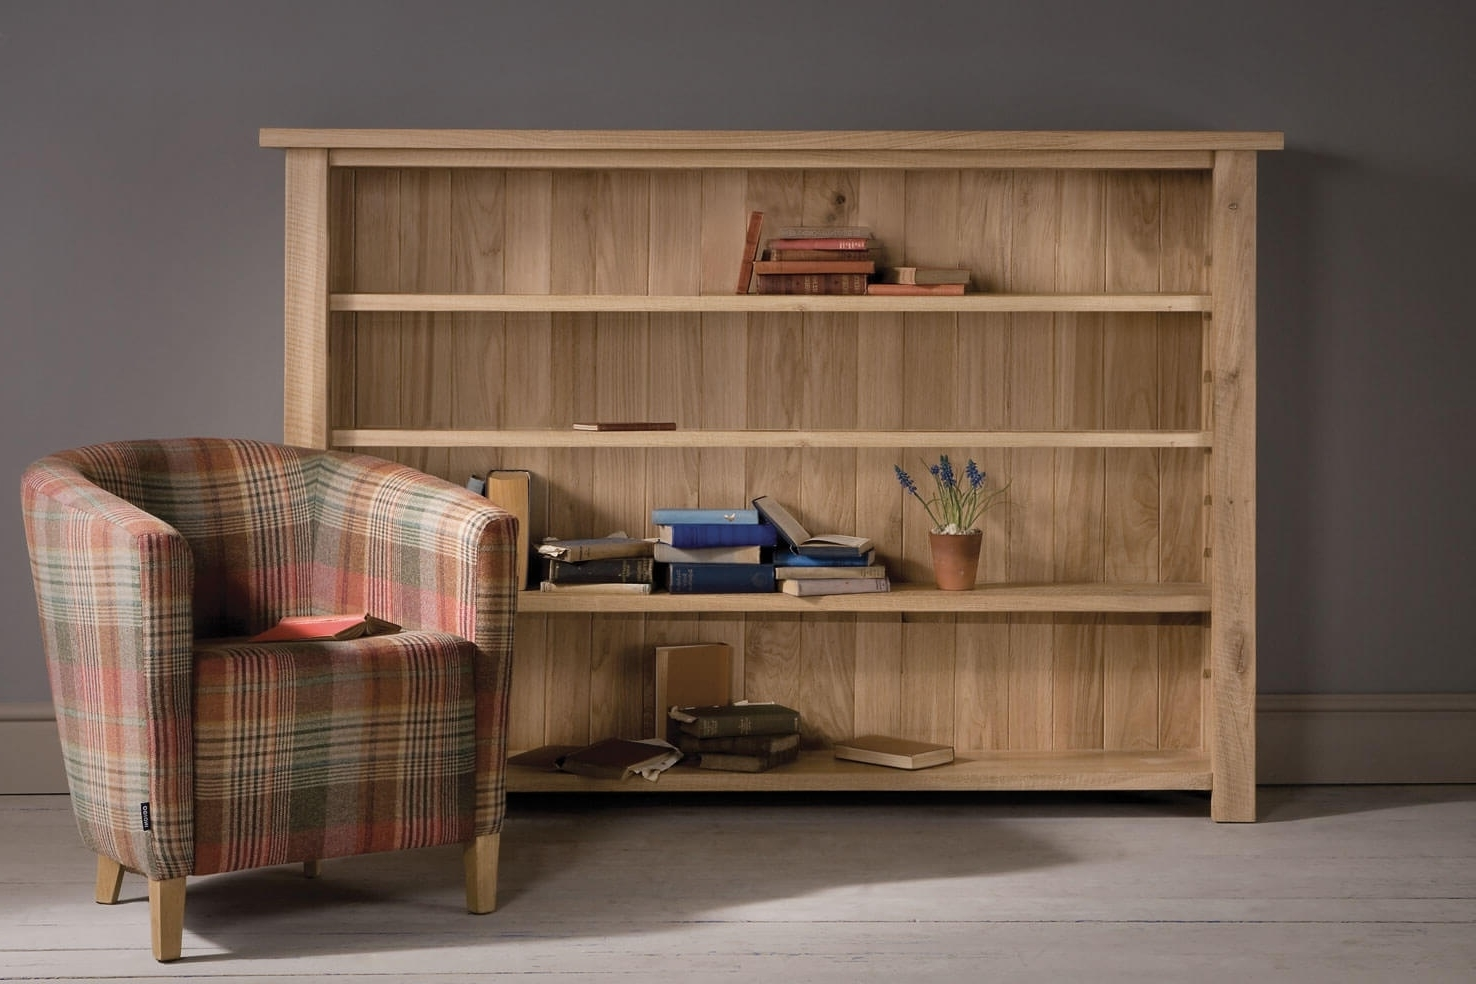 Wide Bookcases Intended For Most Up To Date Gorgeous Oak Bookcase And Organizer — Montserrat Home Design (View 10 of 15)